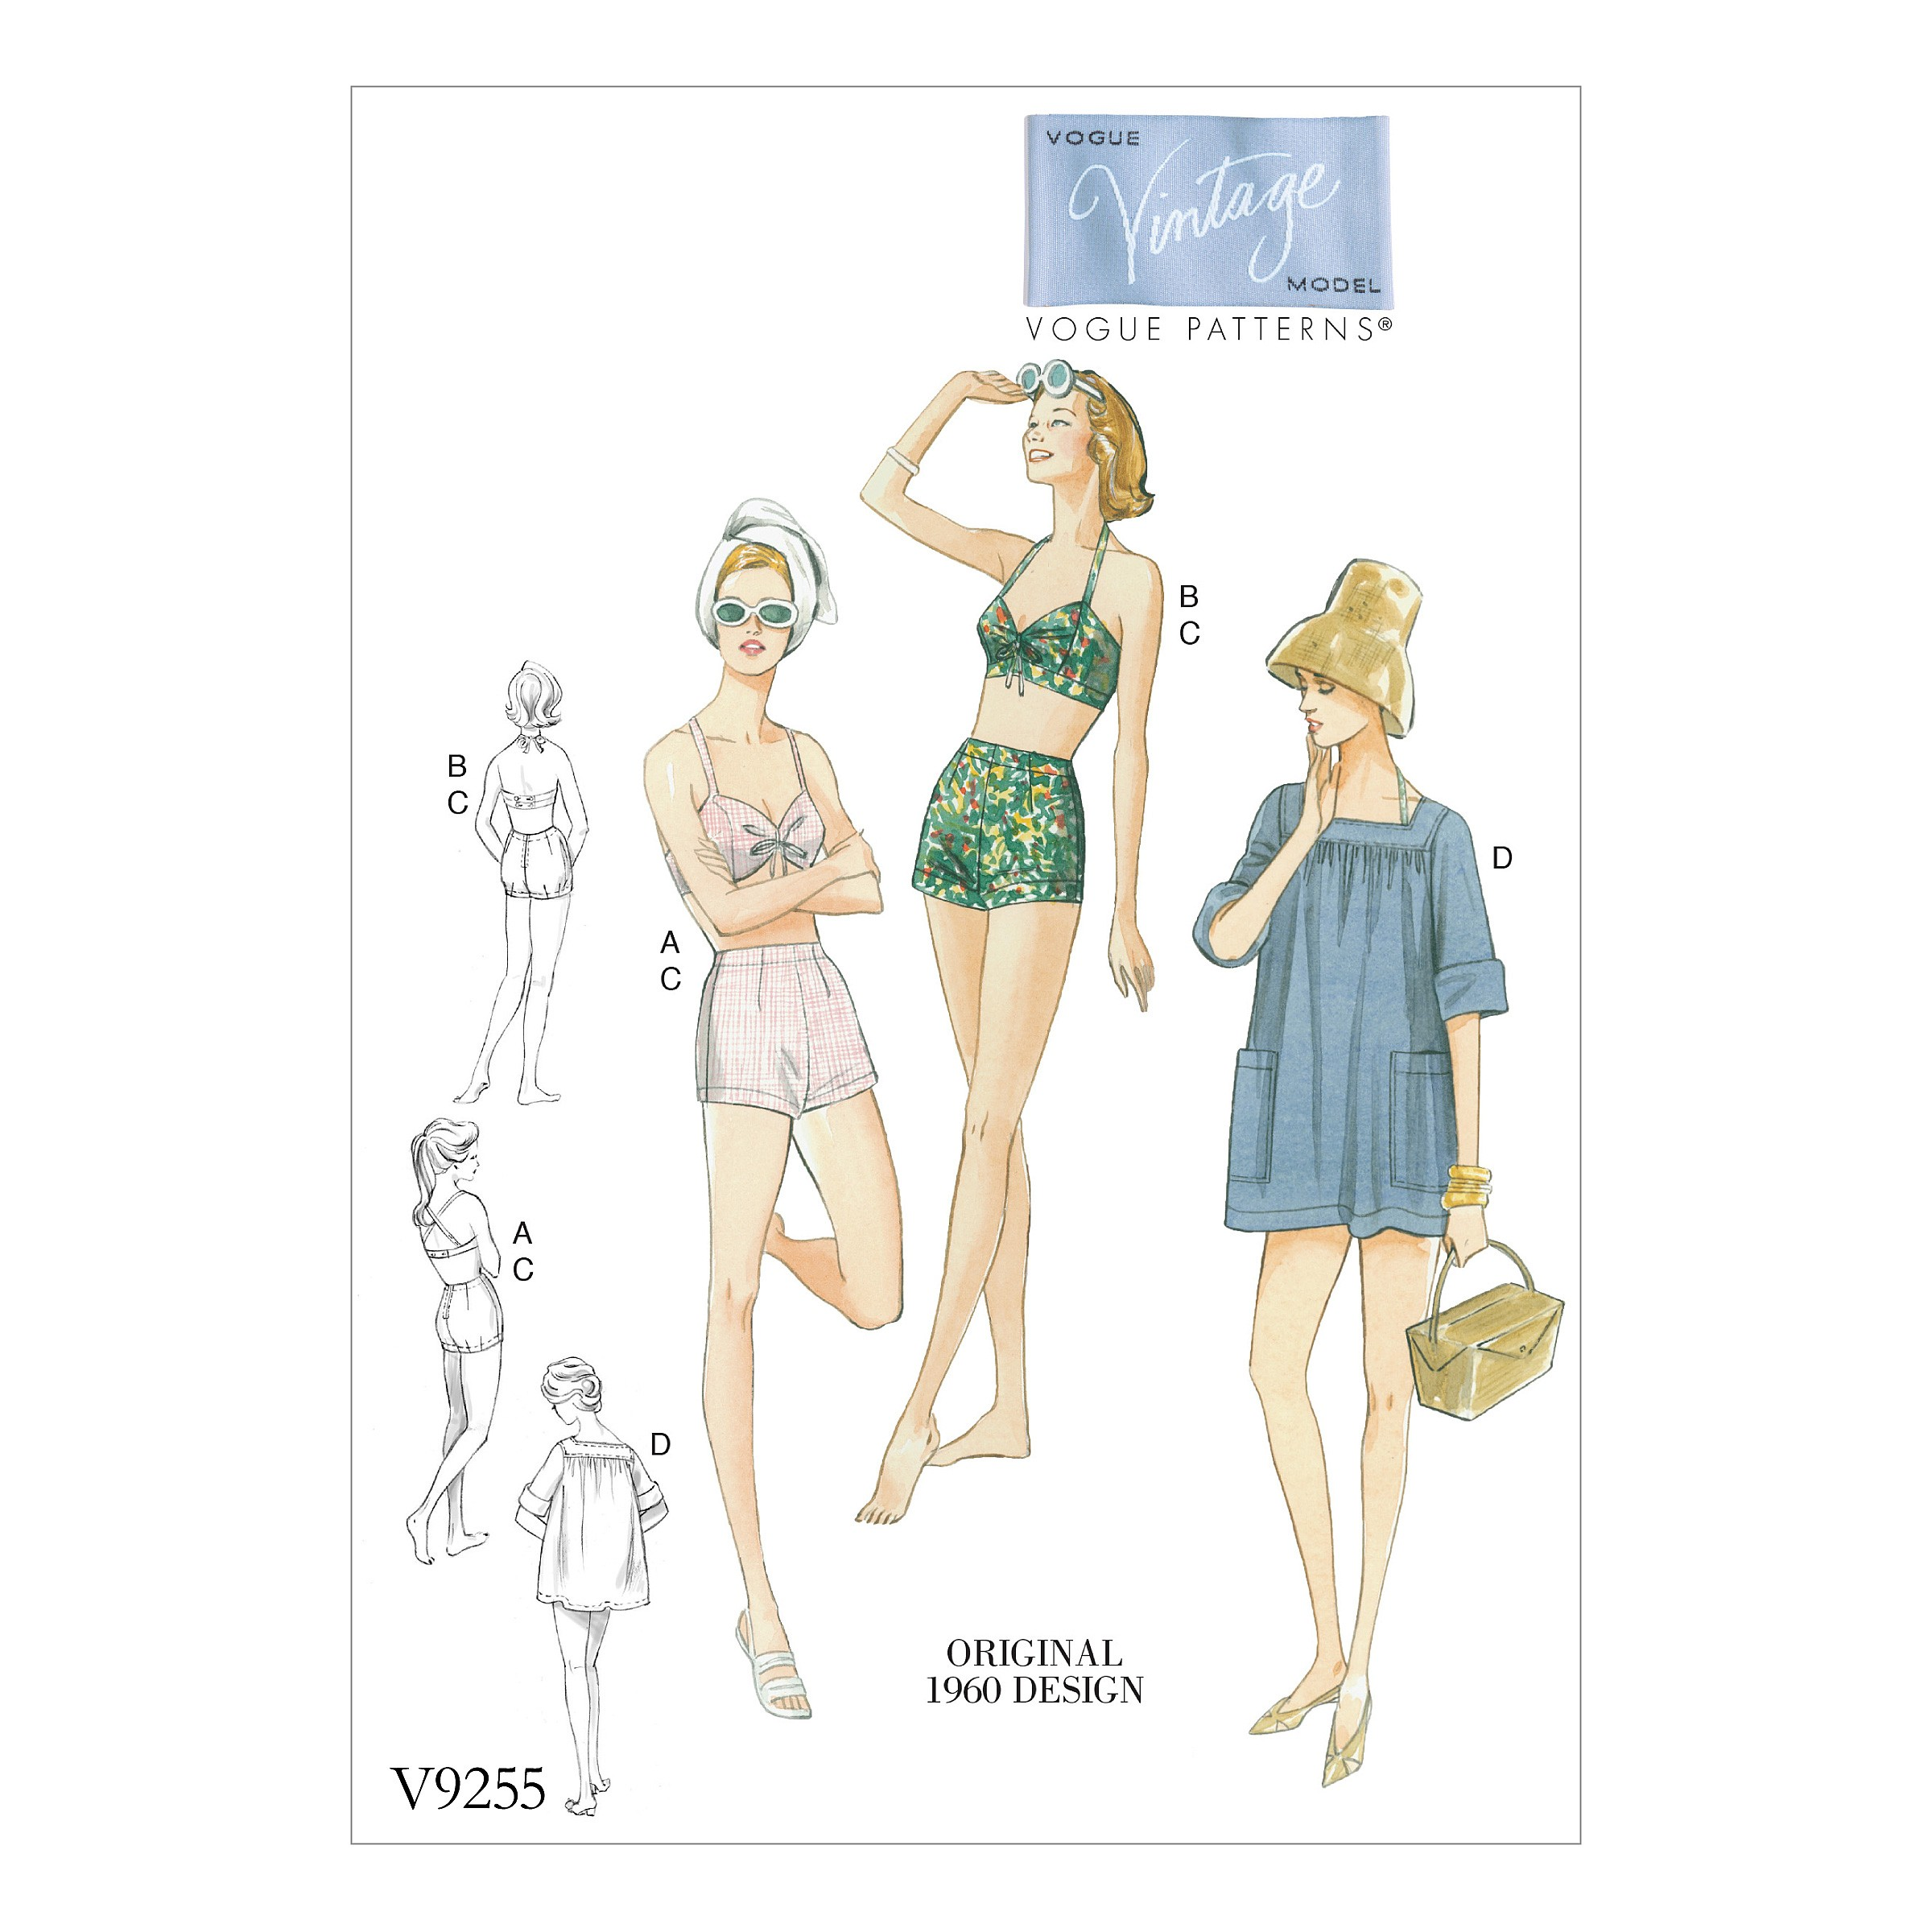 Vogue Sewing Pattern V9255 Women's Vintage Bra Shorts And Cover Up With Pockets